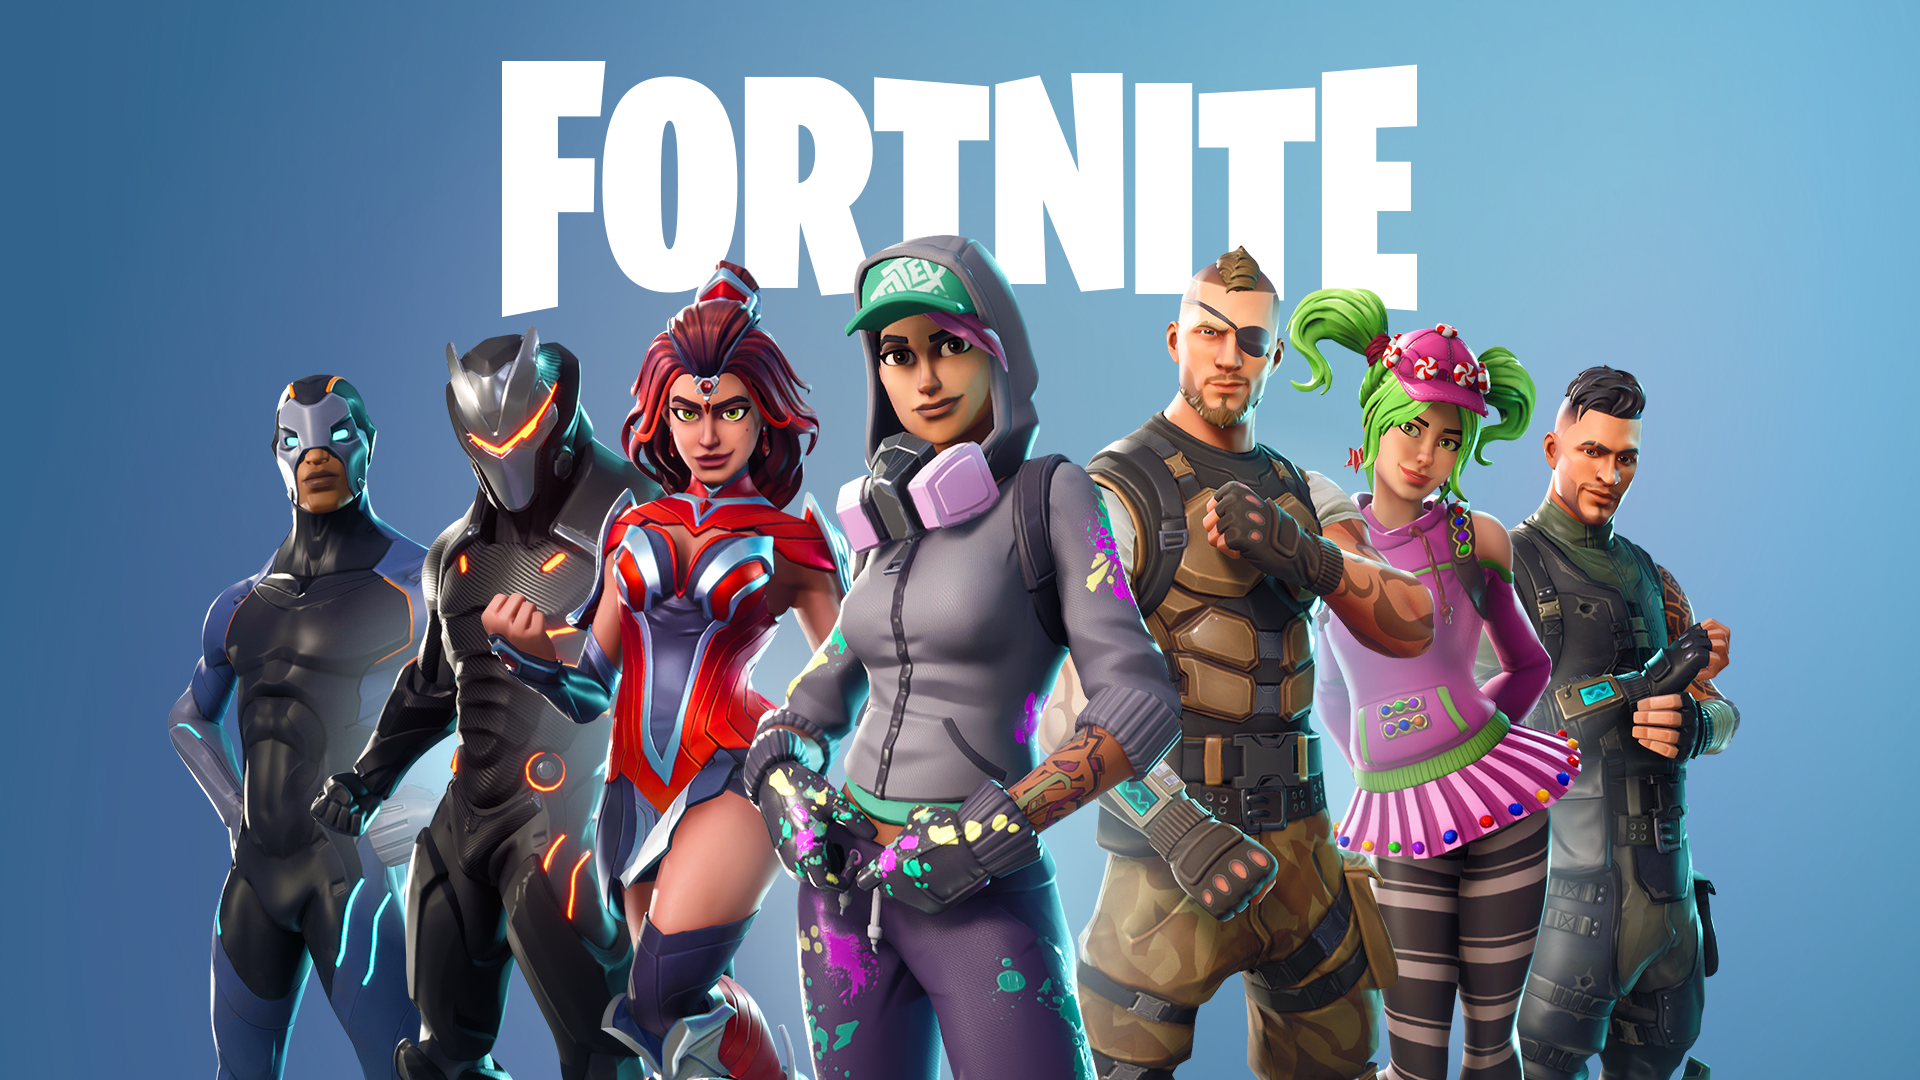 Fortnite Nintendo Switch Review-Voice Chat Now Enabled